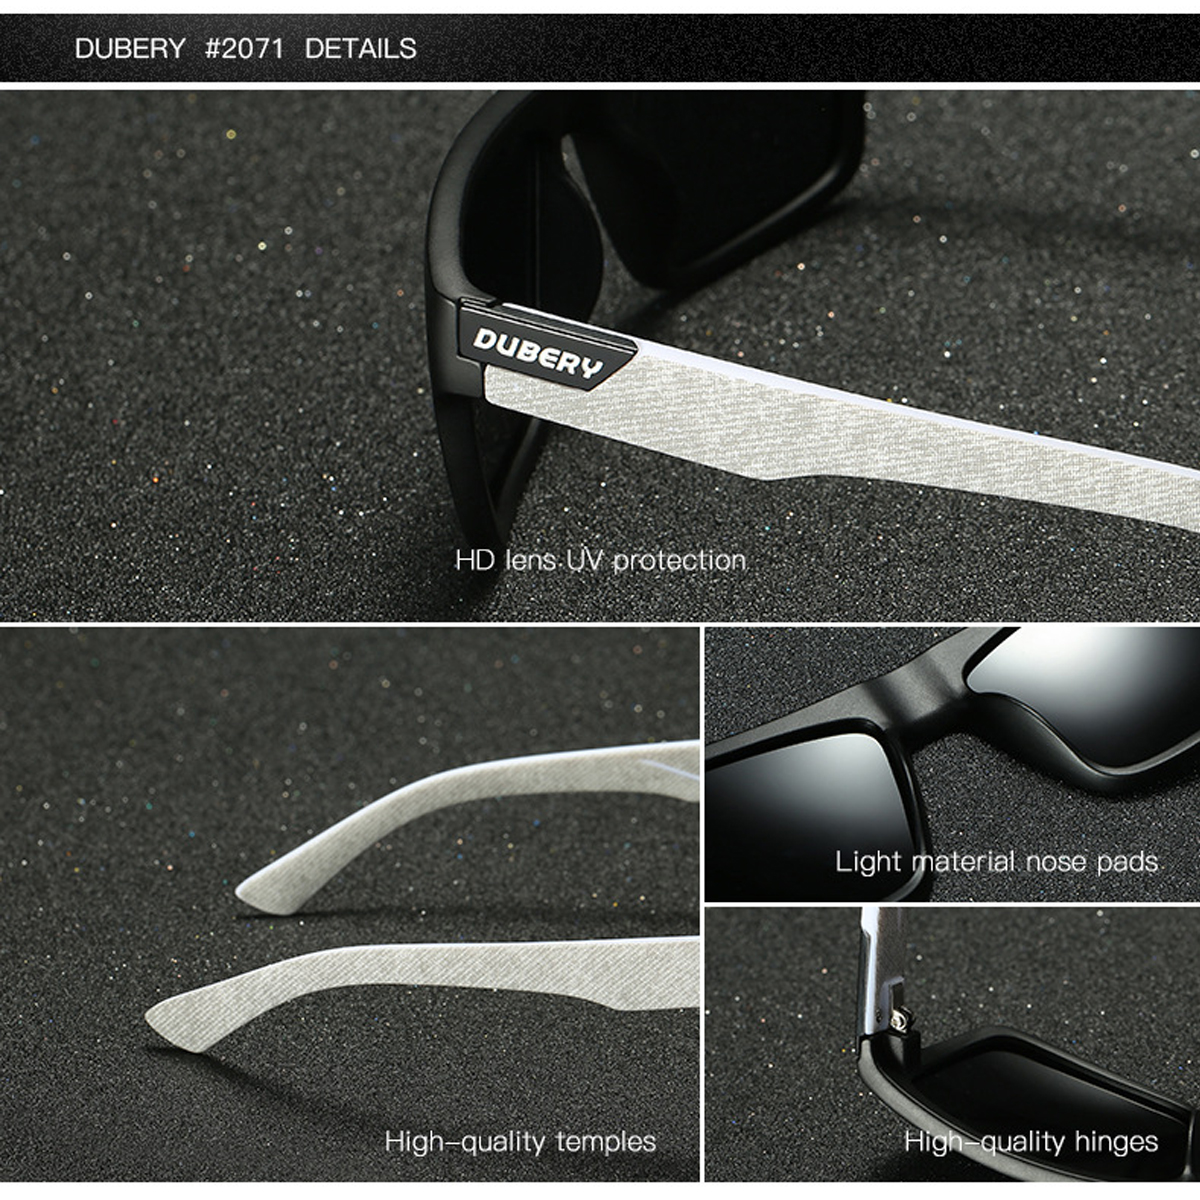 DUBERY D918 Polarized Sunglasses Square UV400 Men Women Outdoor Sports Cycling Driving Sunglasses